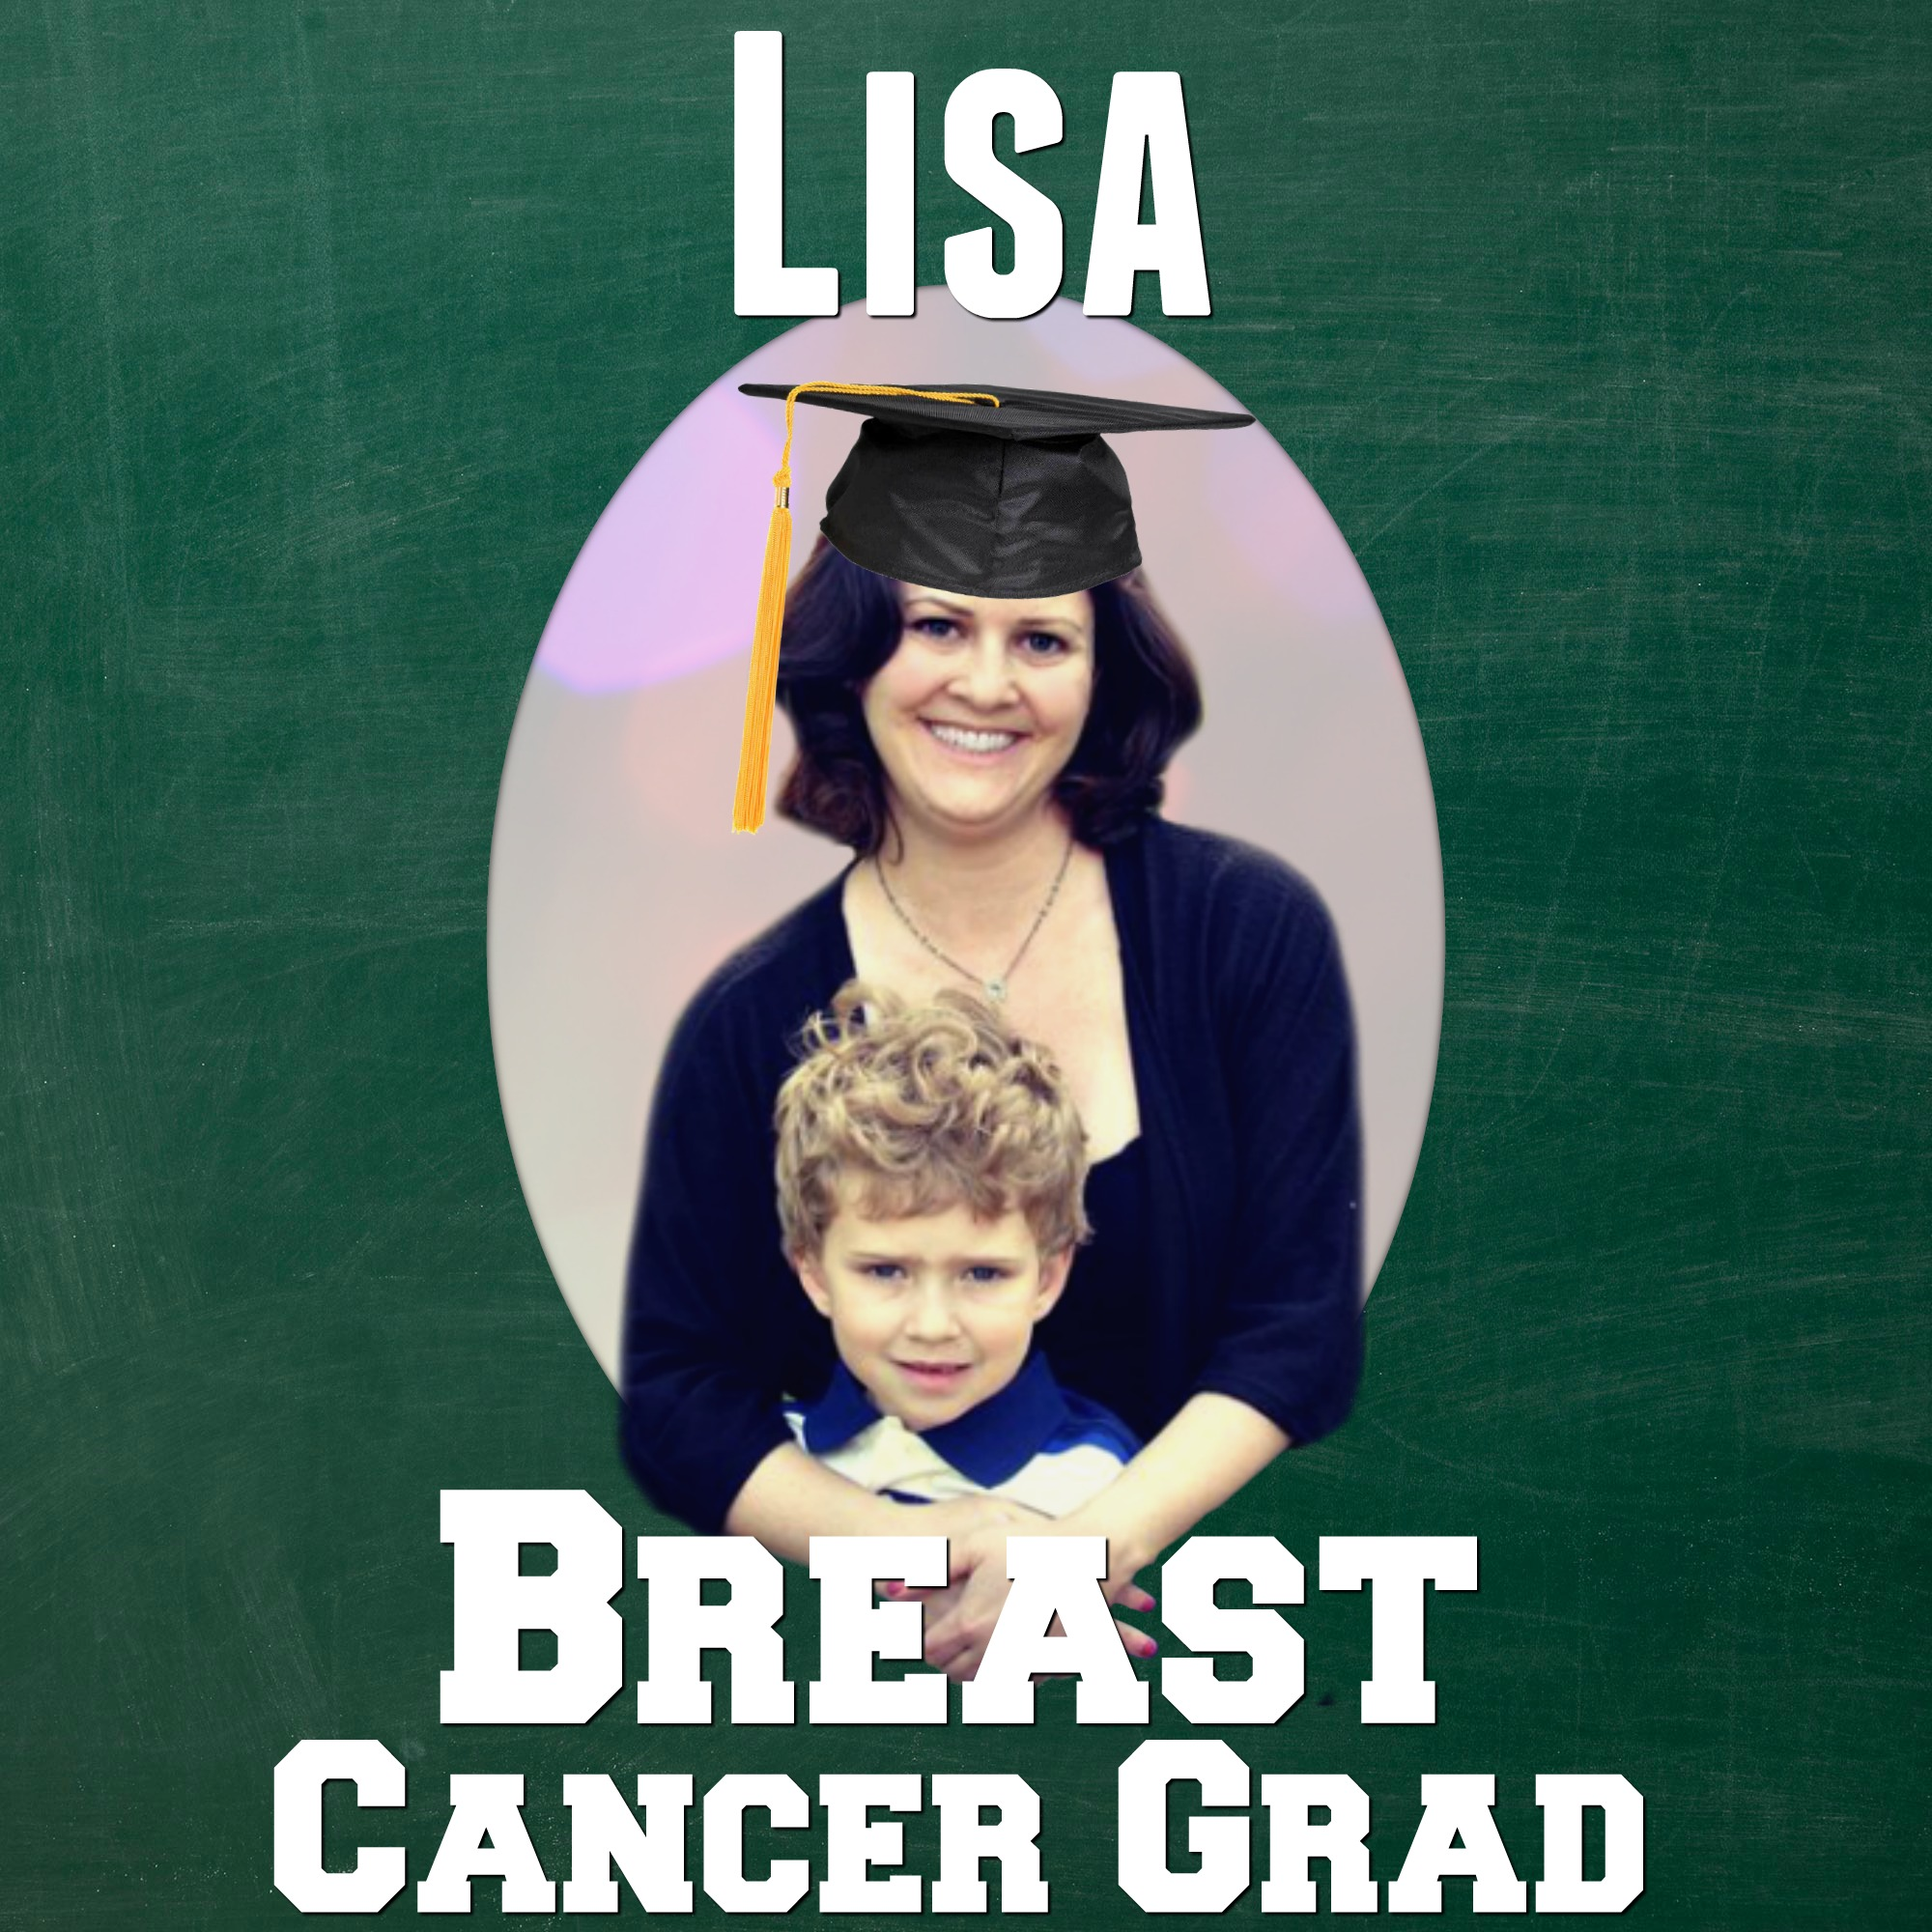 lisa Bair Breast Cancer Grad CancerGrad Yearbook